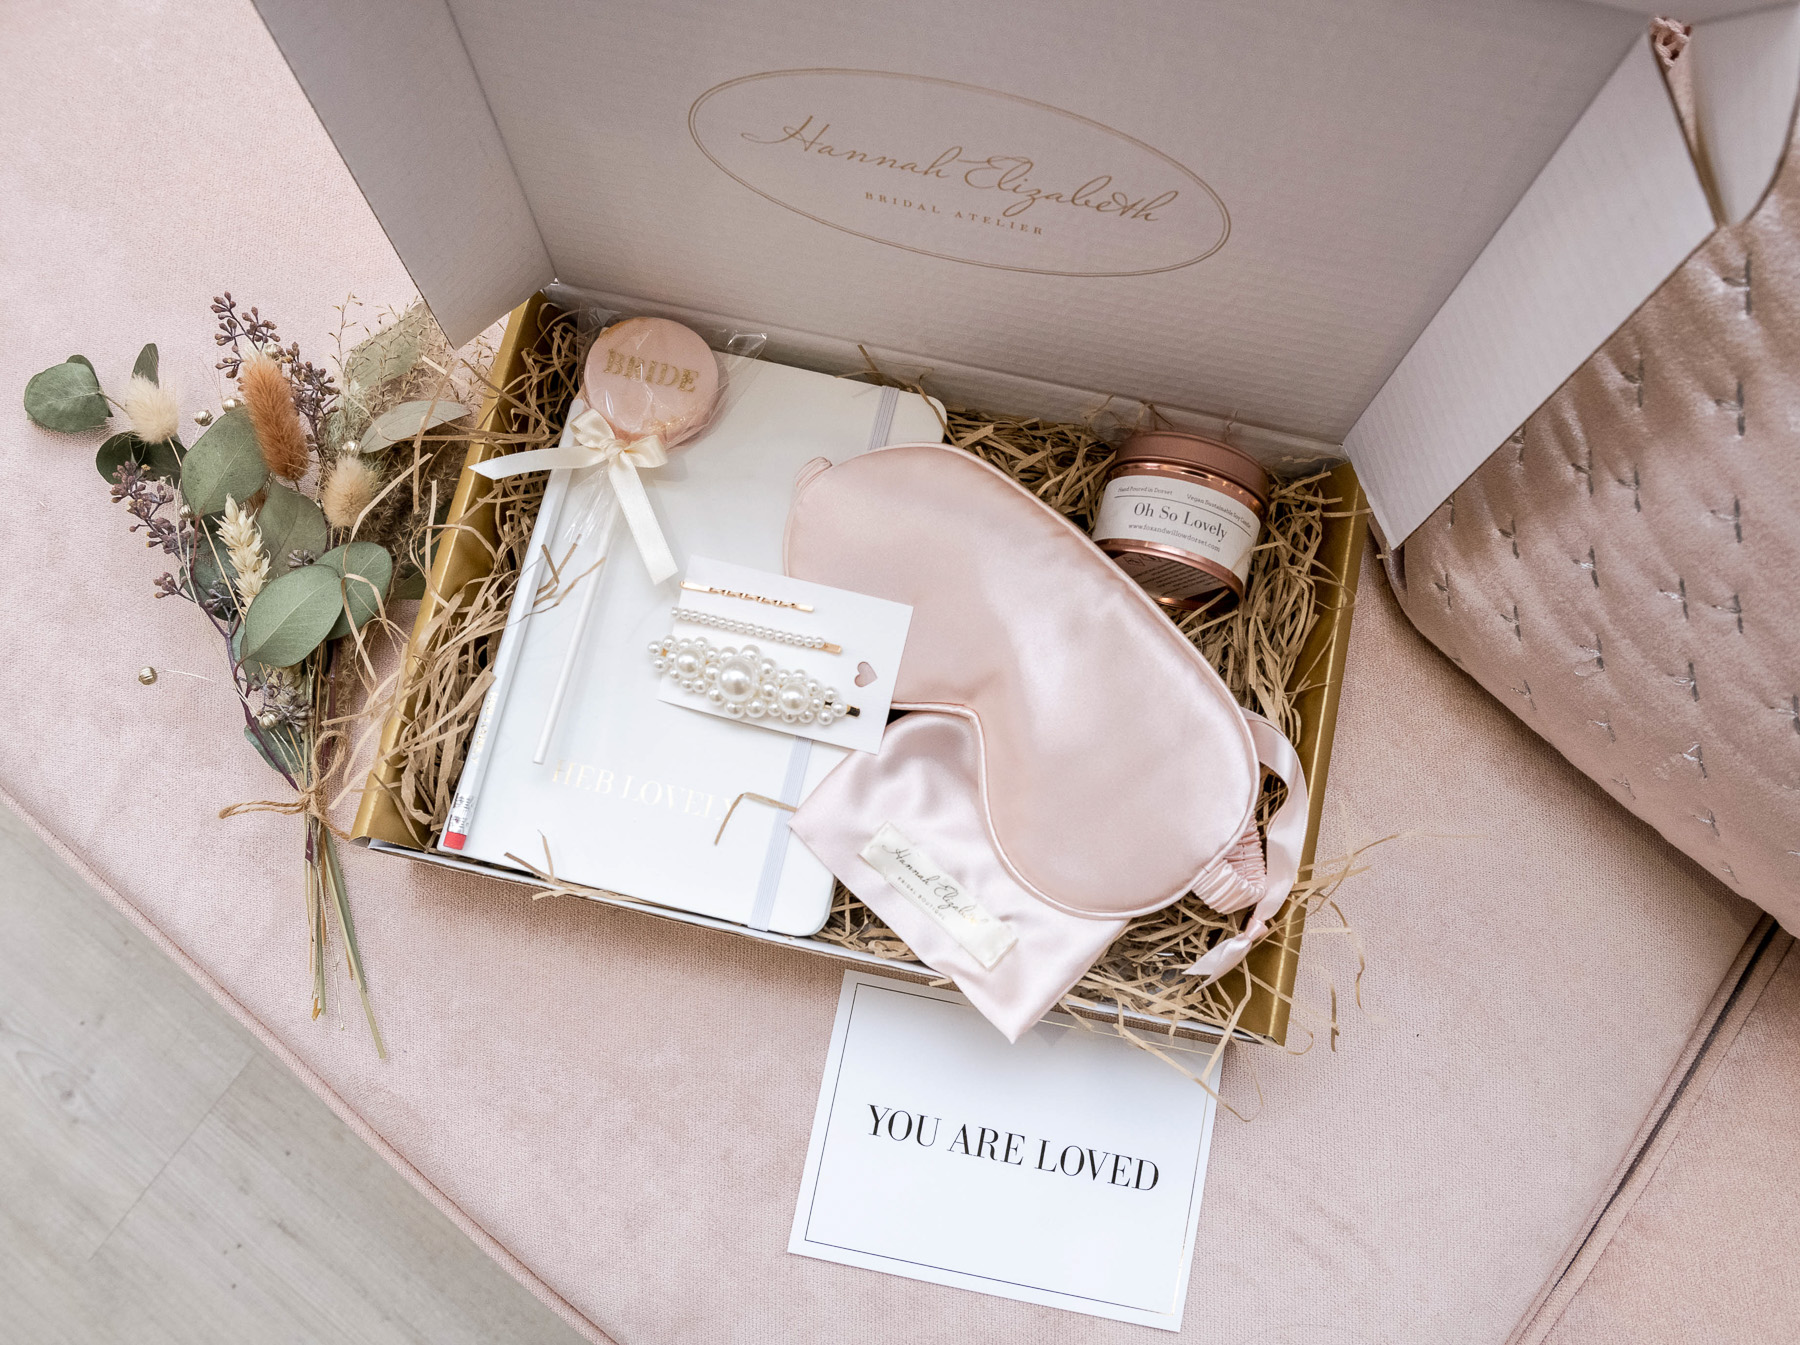 luxury bridal gifts from Hannah Elizabeth Bridal, Avec Amour, bridal gifts in gold box